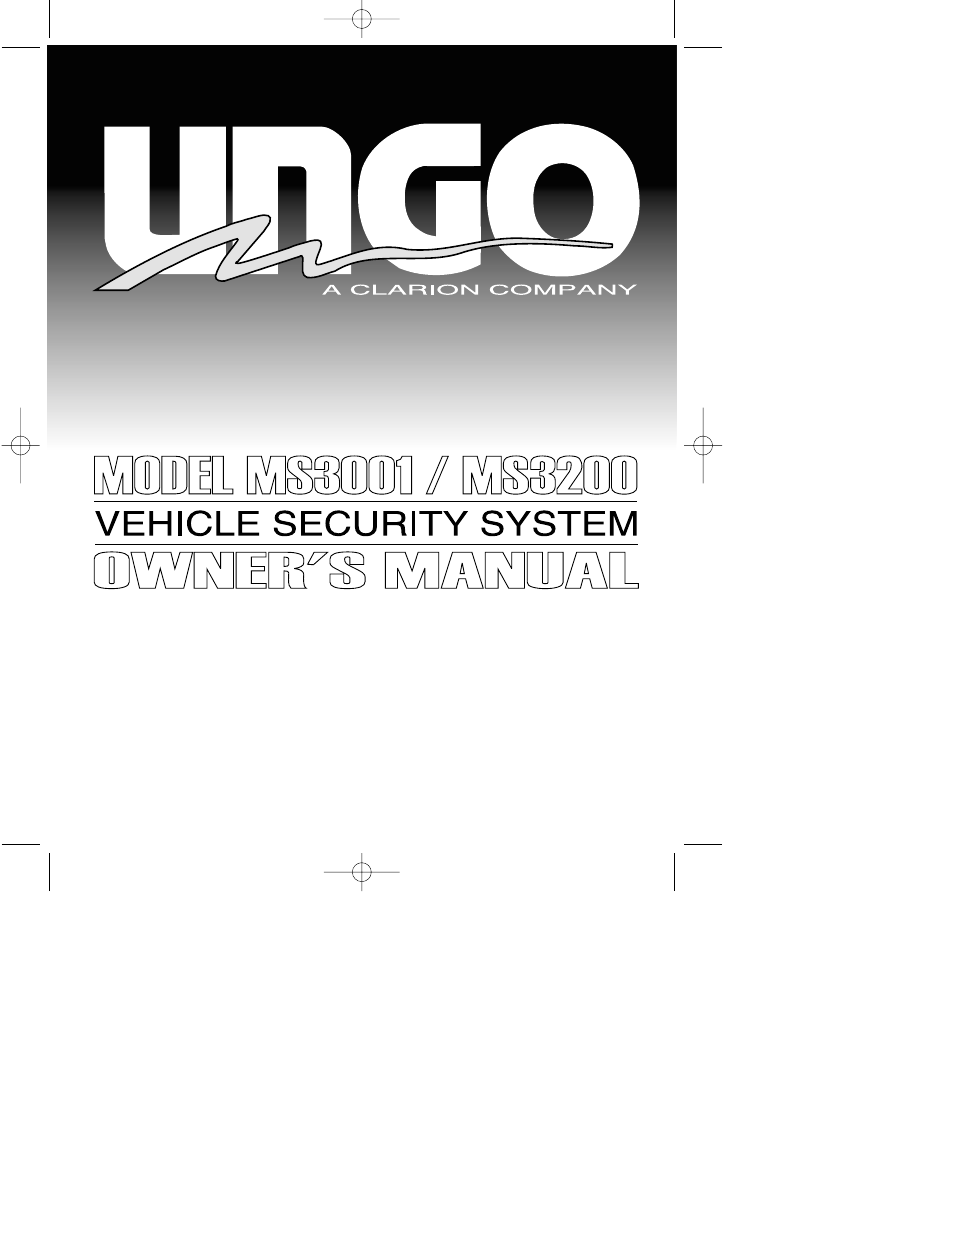 Ungo Car Alarm Wiring Diagram Electrical Diagrams Omega Keyless Entry Manual Www Topsimages Com Systems